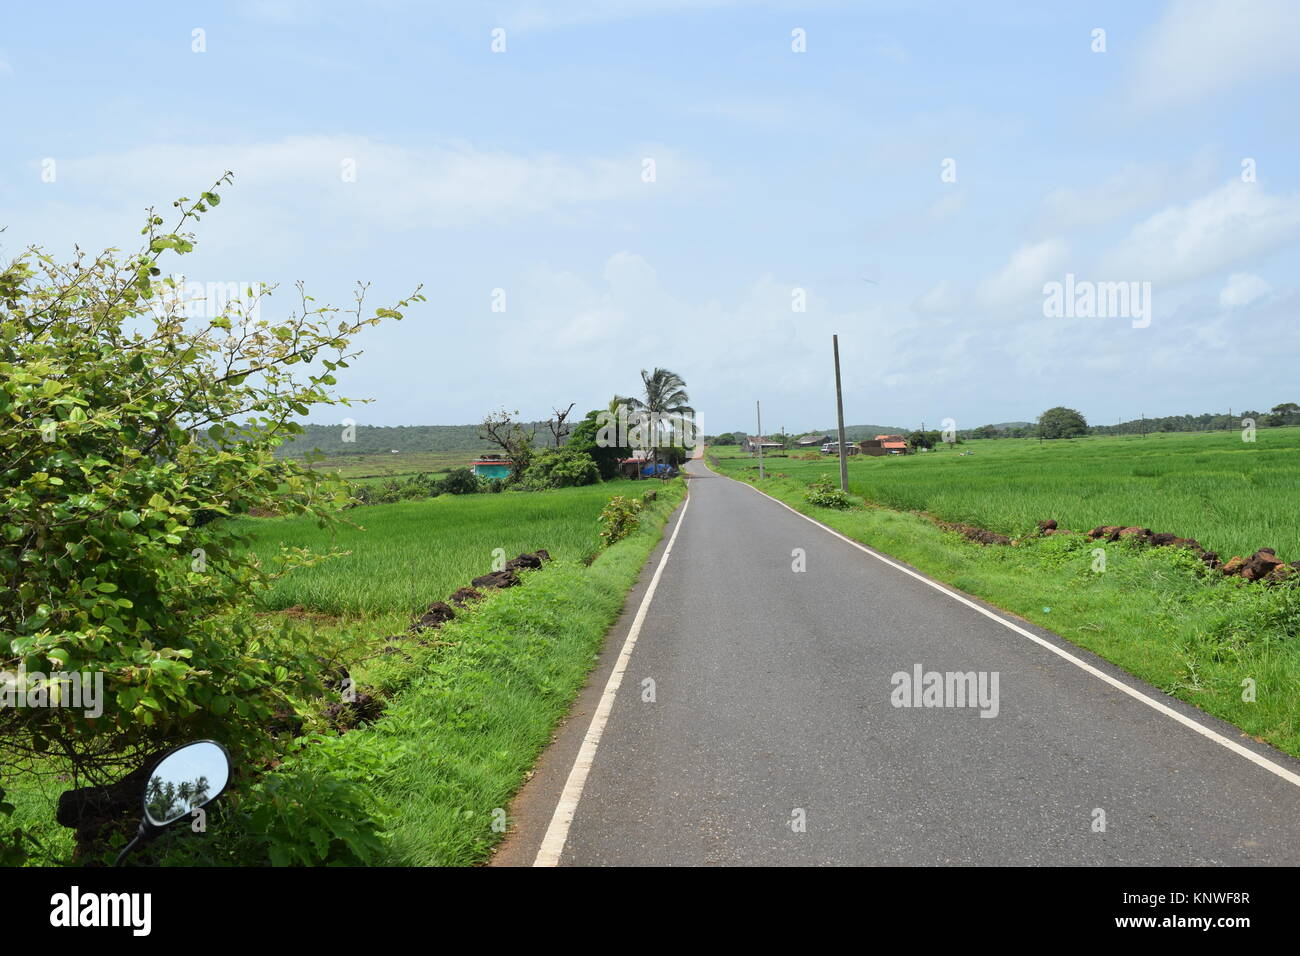 Asphalt Roads With Greenery In Side Amazing Beautiful Road View Stock Photo Alamy